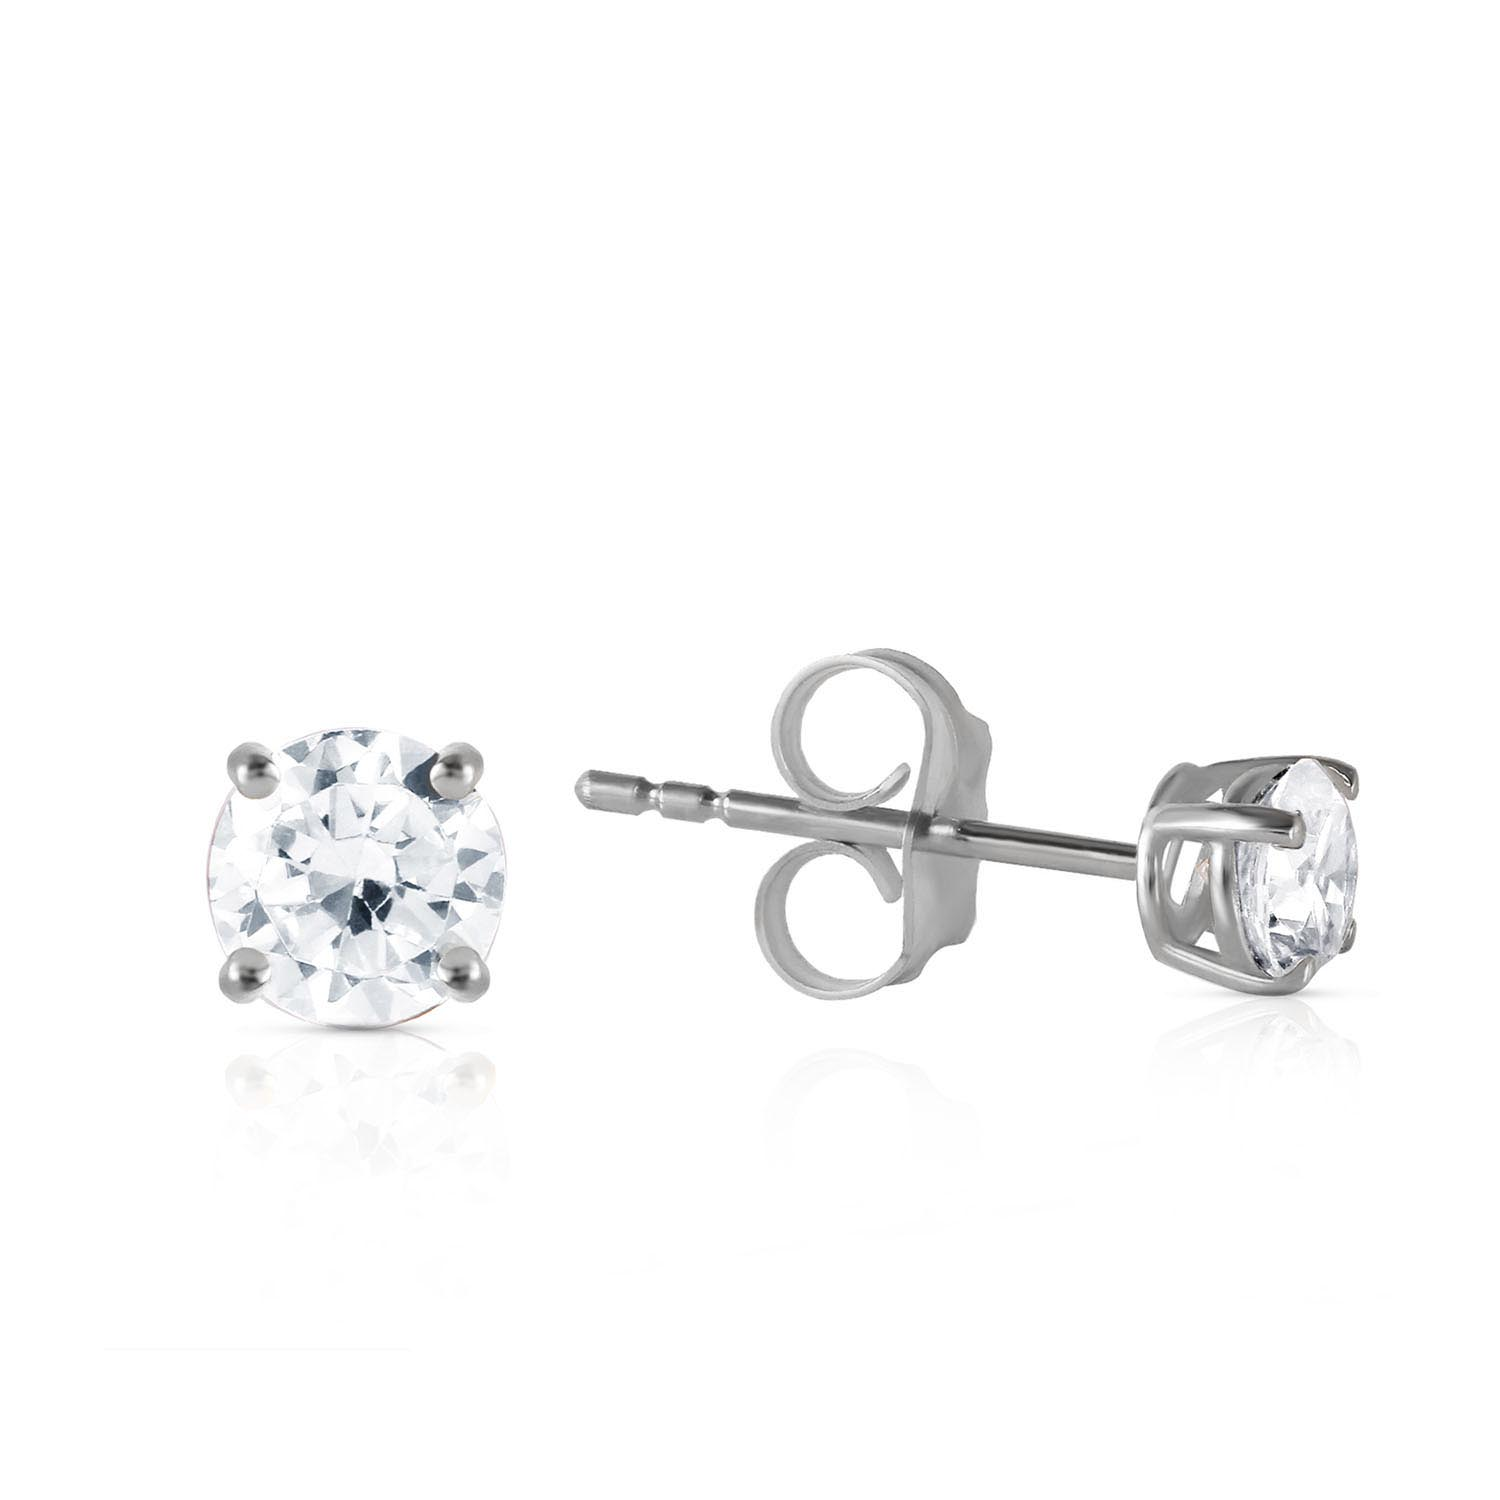 Diamond Stud Earrings 0.4 ctw in 9ct White Gold